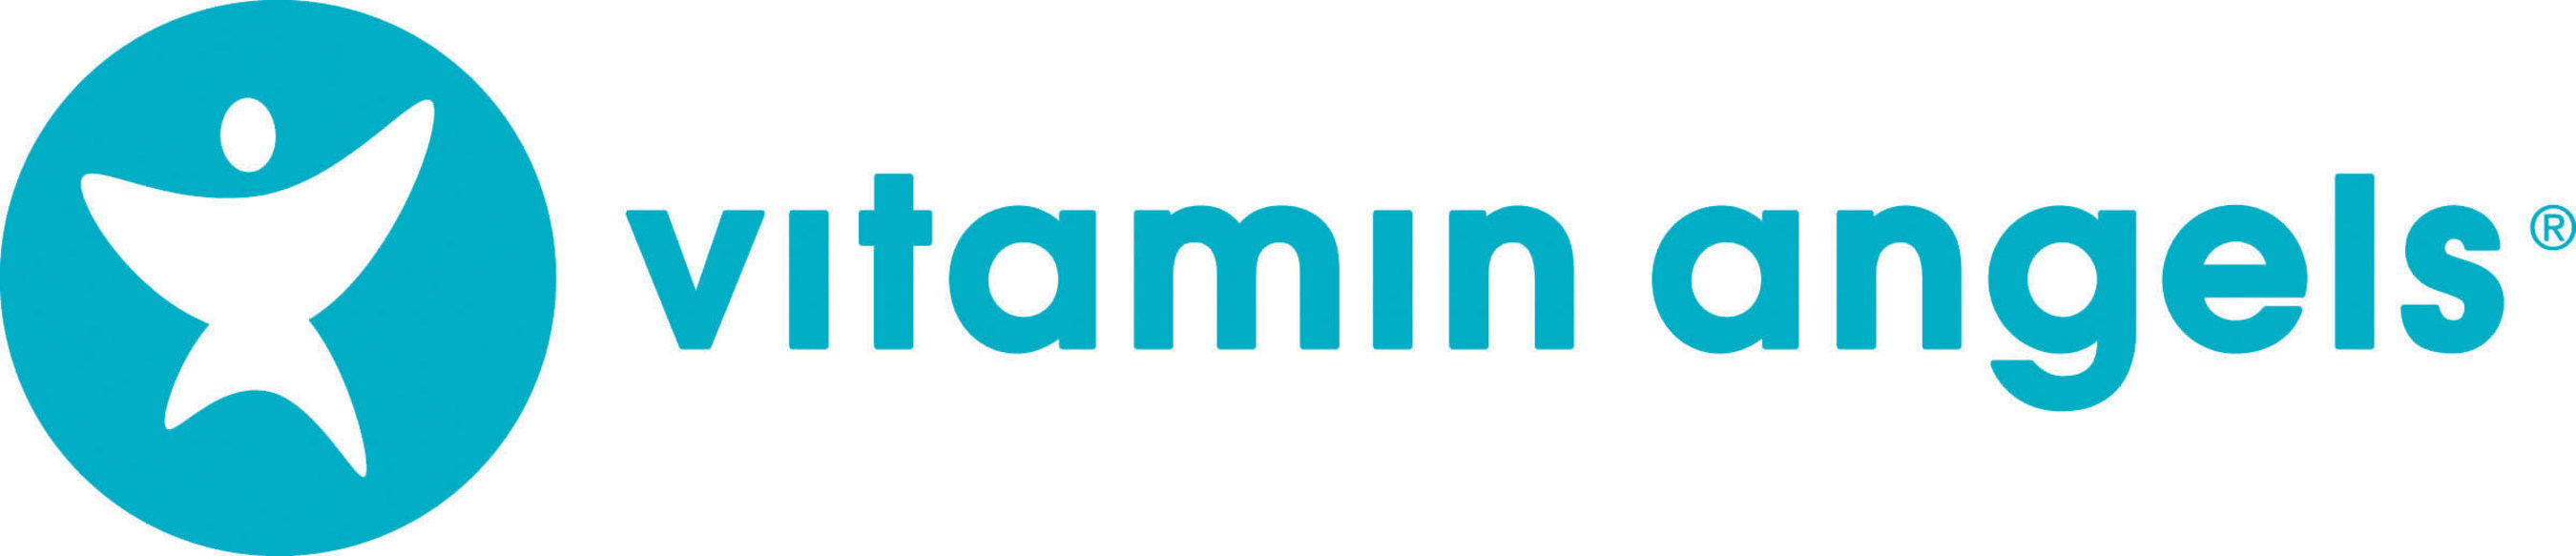 Vitamin Angels helps at-risk populations in need-specifically pregnant women, new mothers, and children under ...